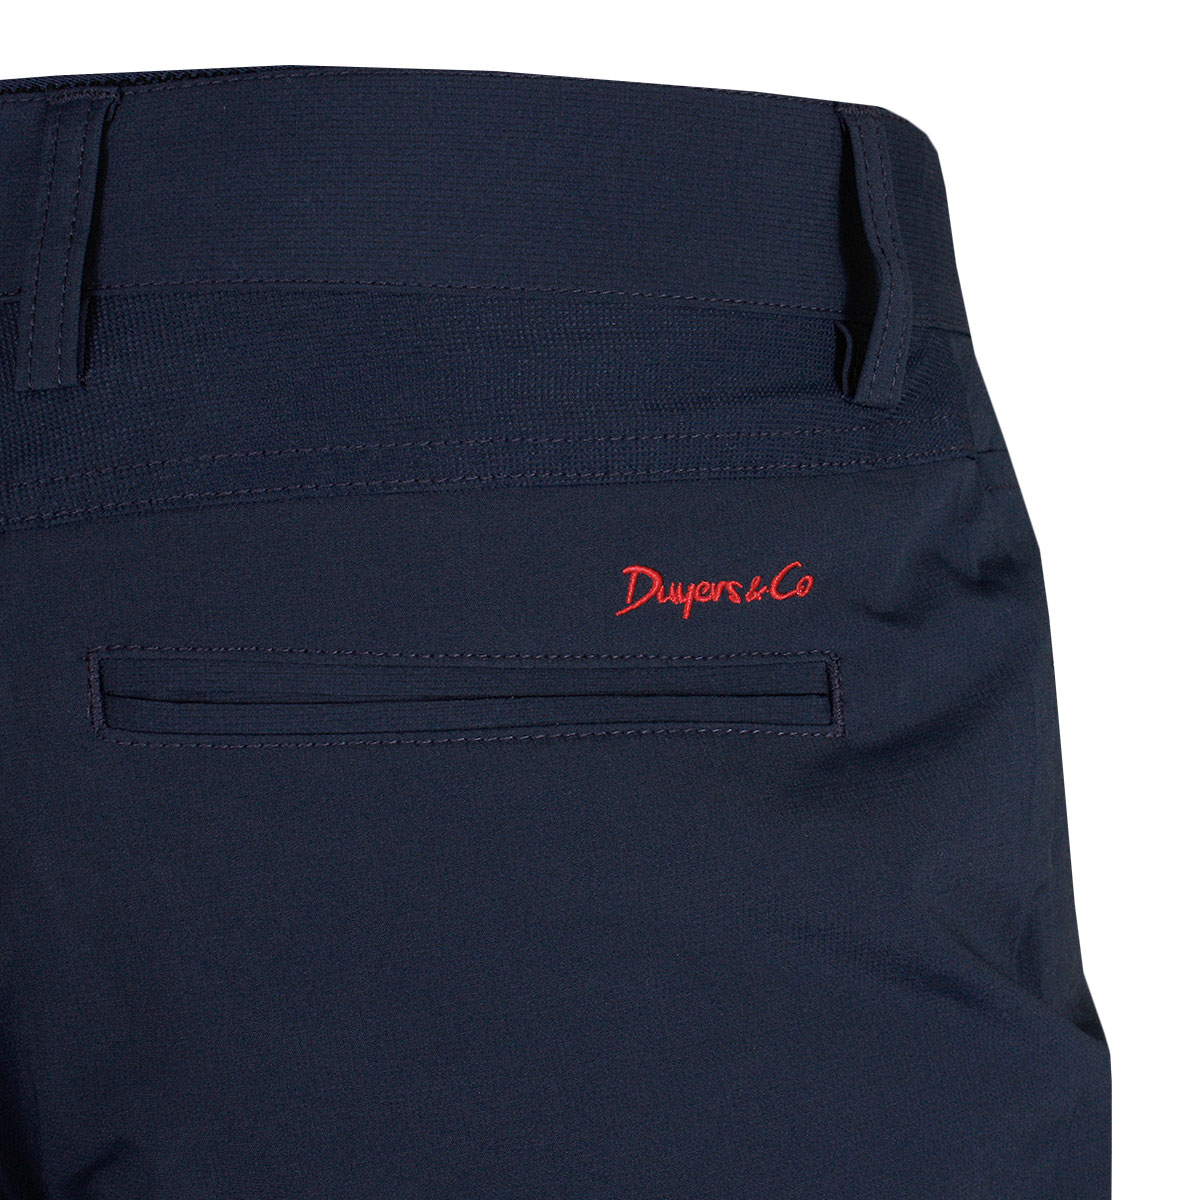 Dwyers-amp-Co-Mens-Micro-Tech-Golf-Technical-Water-Resistant-Trousers-33-OFF-RRP thumbnail 7